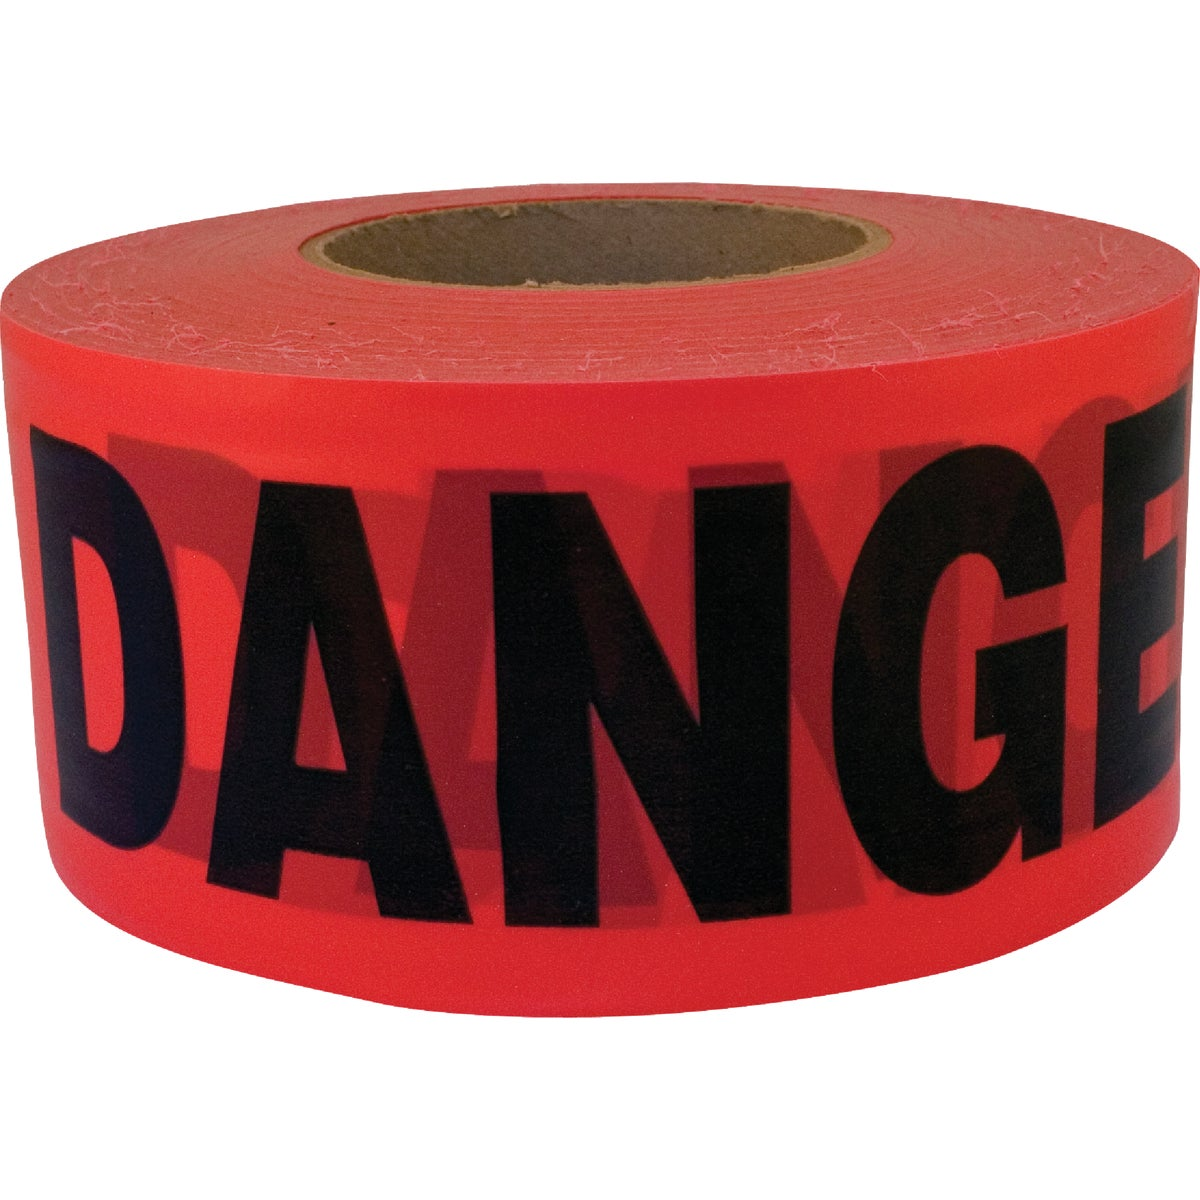 LEAD ABATMT WARNING TAPE